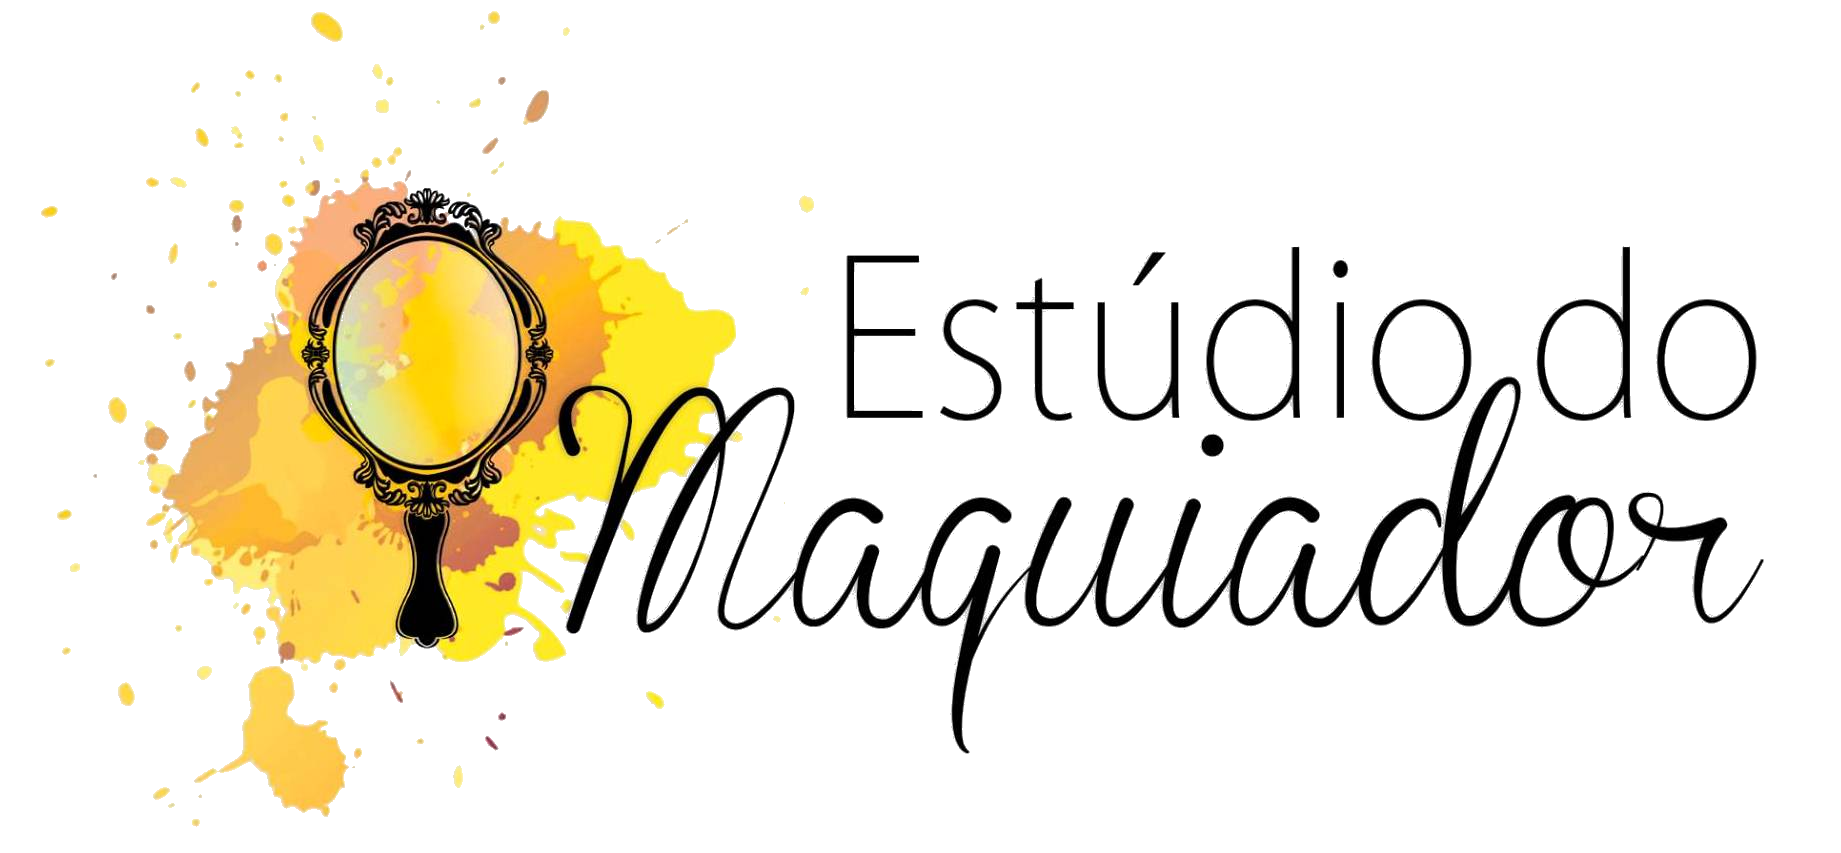 Estudio Do Maquiador